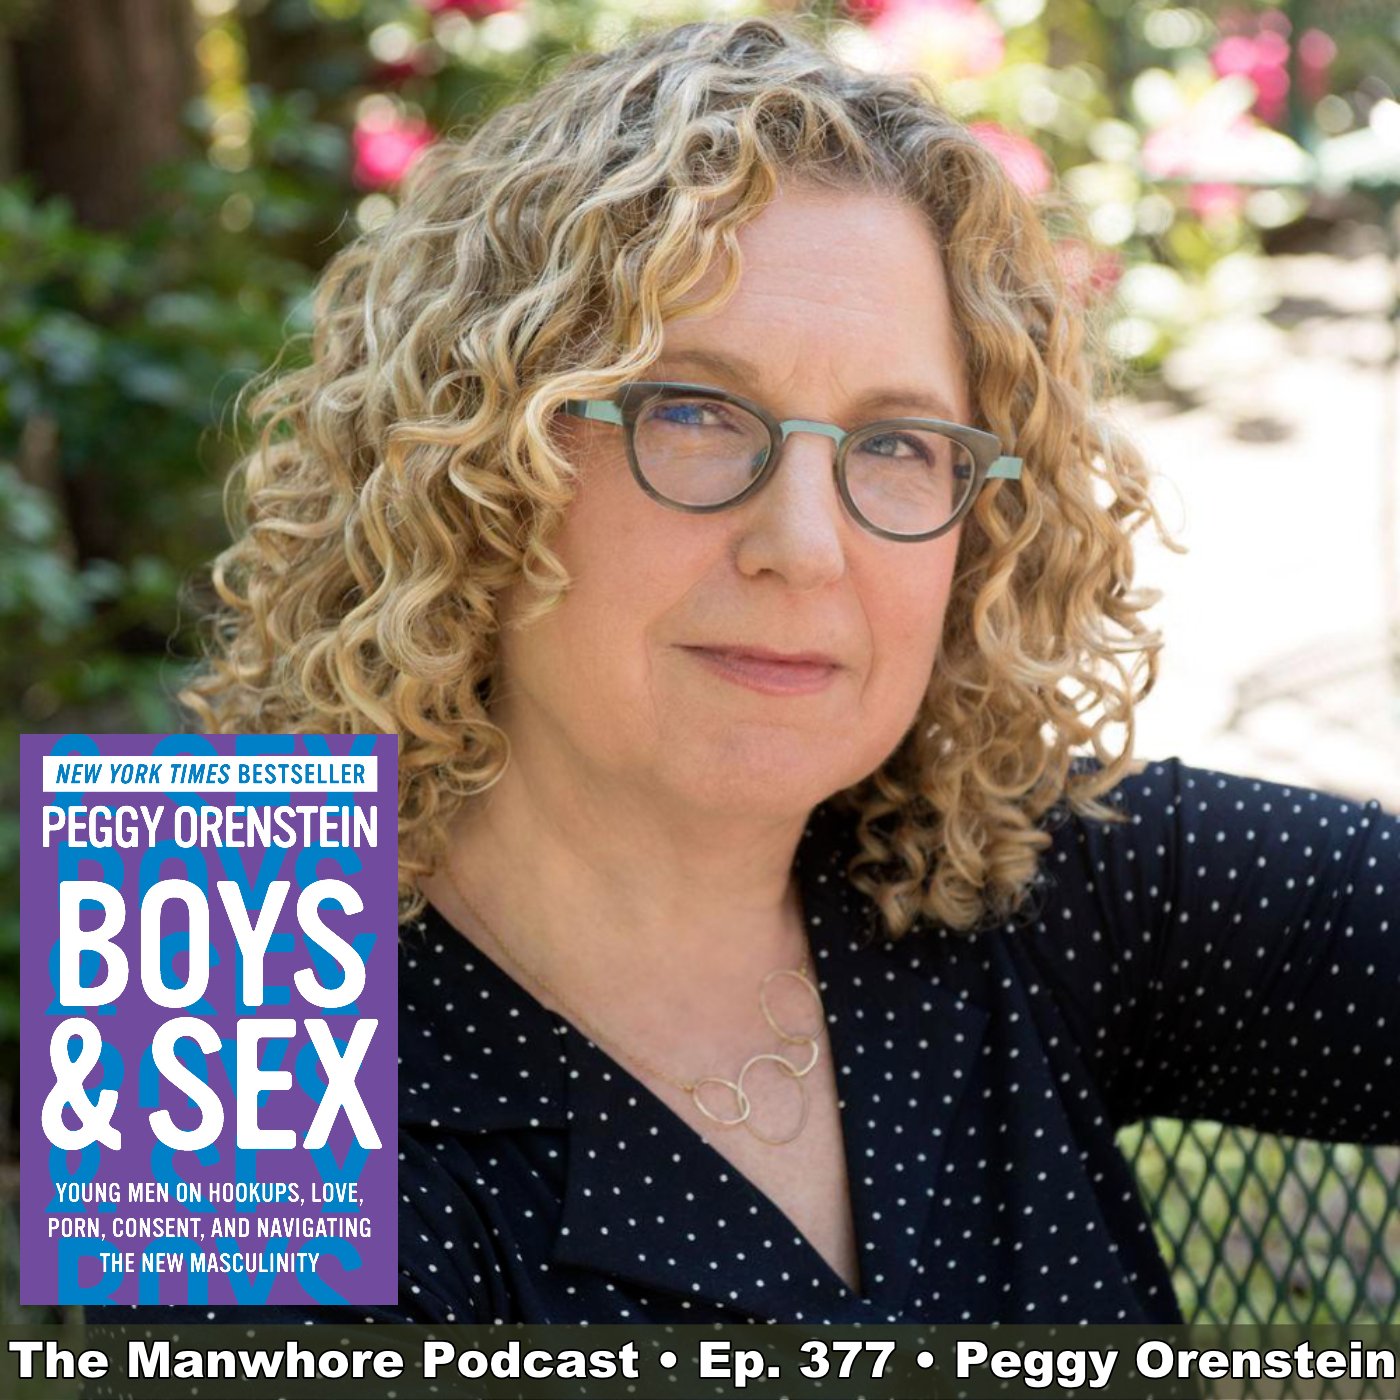 The Manwhore Podcast: A Sex-Positive Quest - Ep. 377: Nice Guys & Bad Boys & Sex with Peggy Orenstein